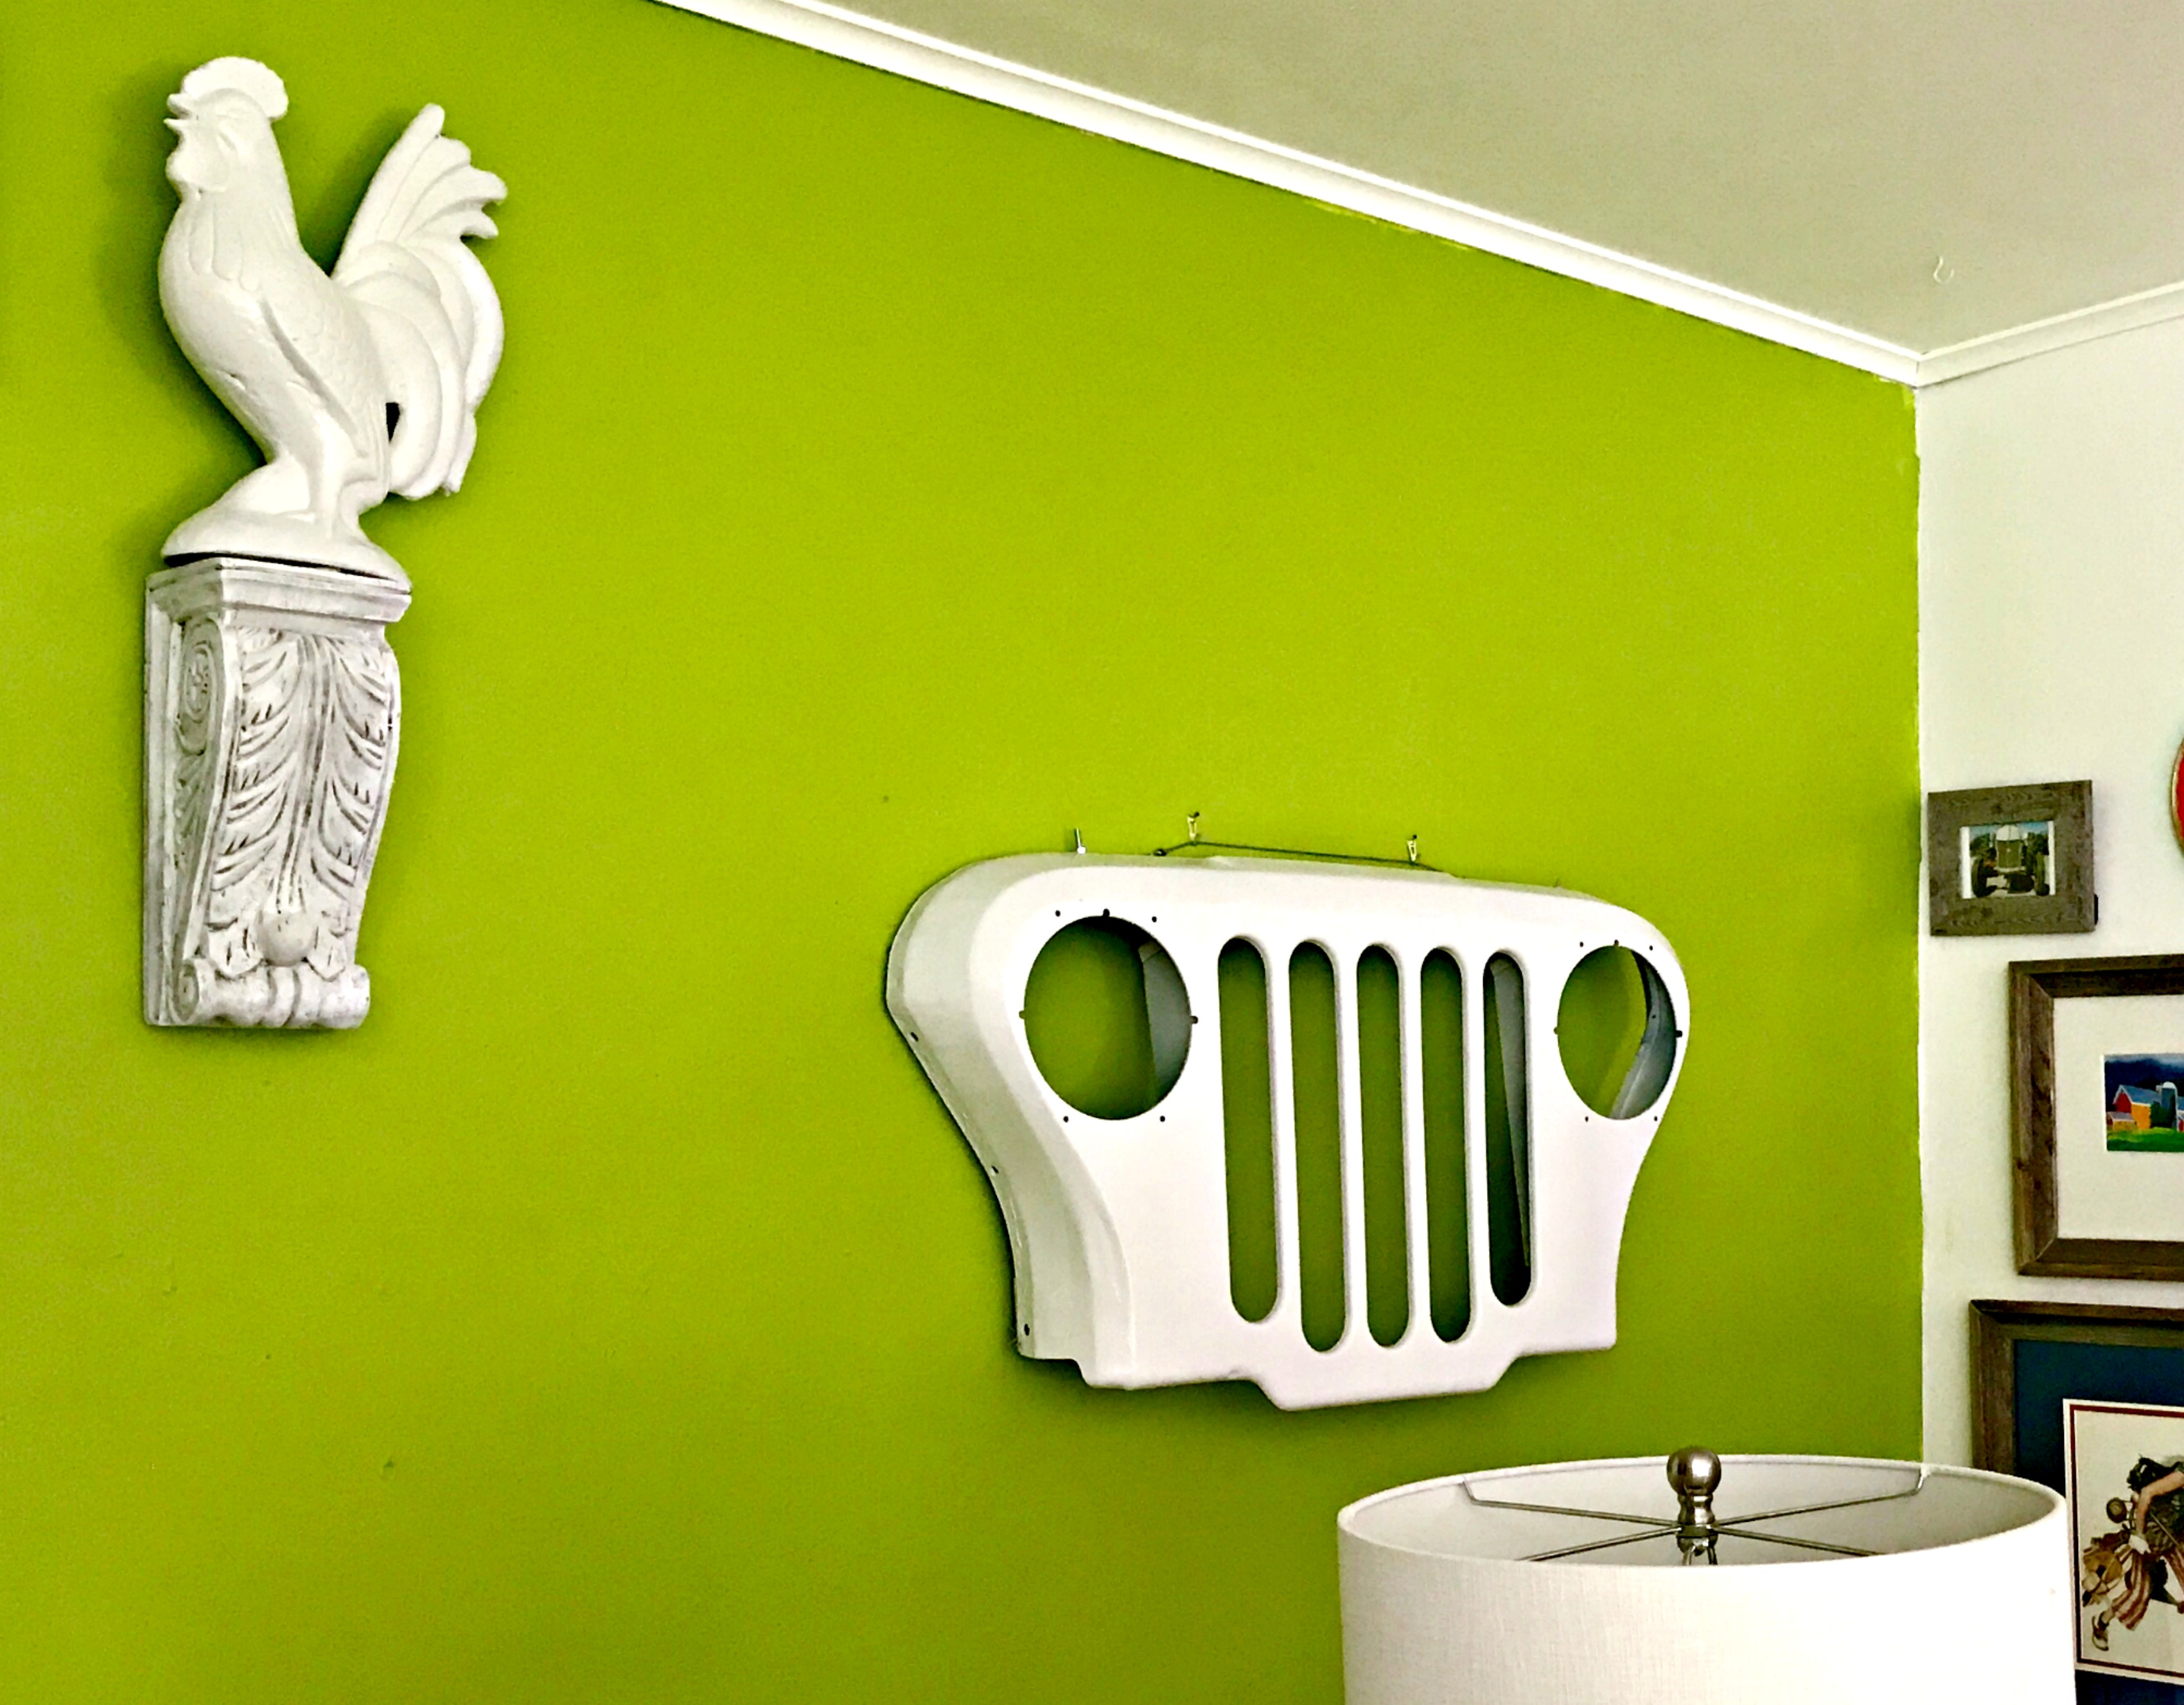 Accent wall - how to choose the right color for you